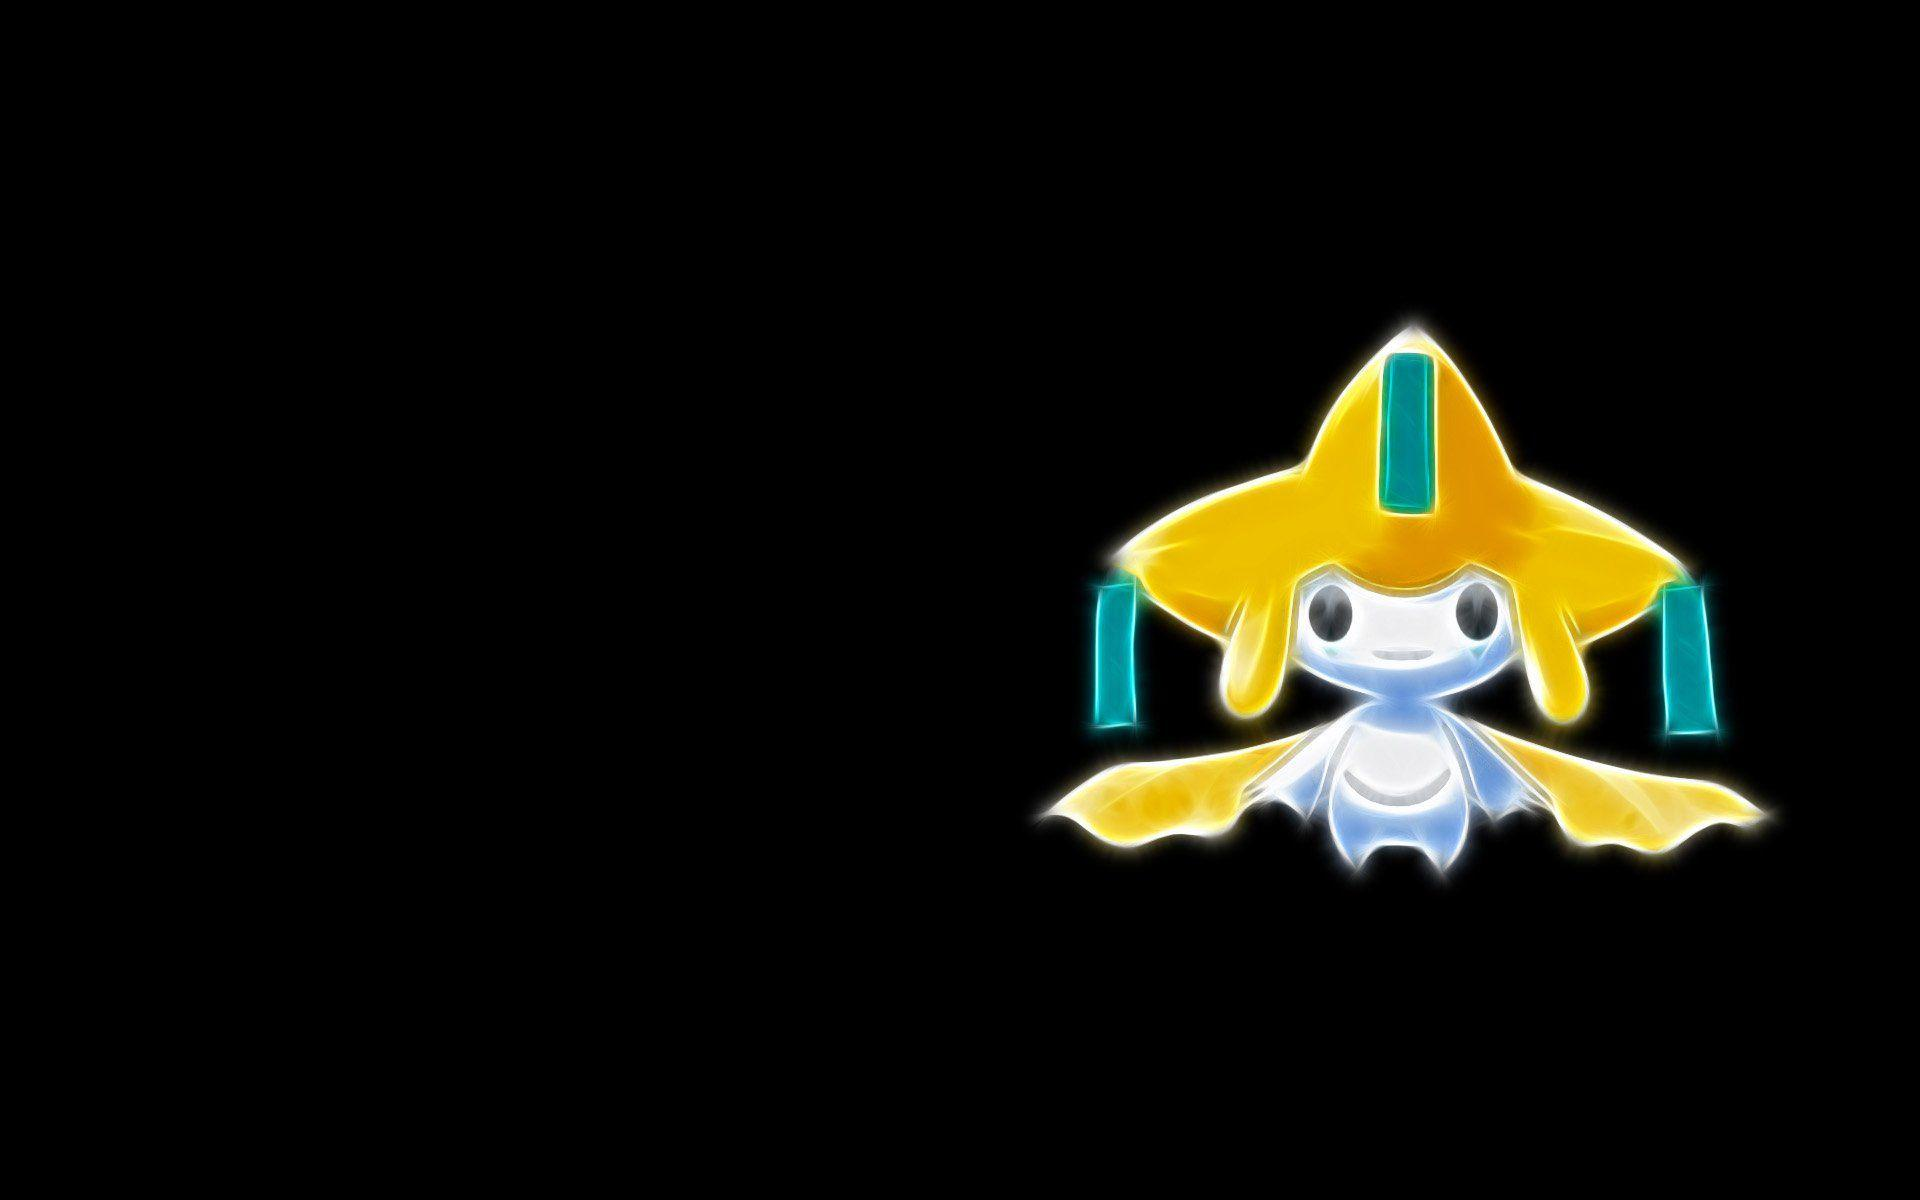 10 Jirachi (Pokémon) HD Wallpapers | Background Images - Wallpaper Abyss